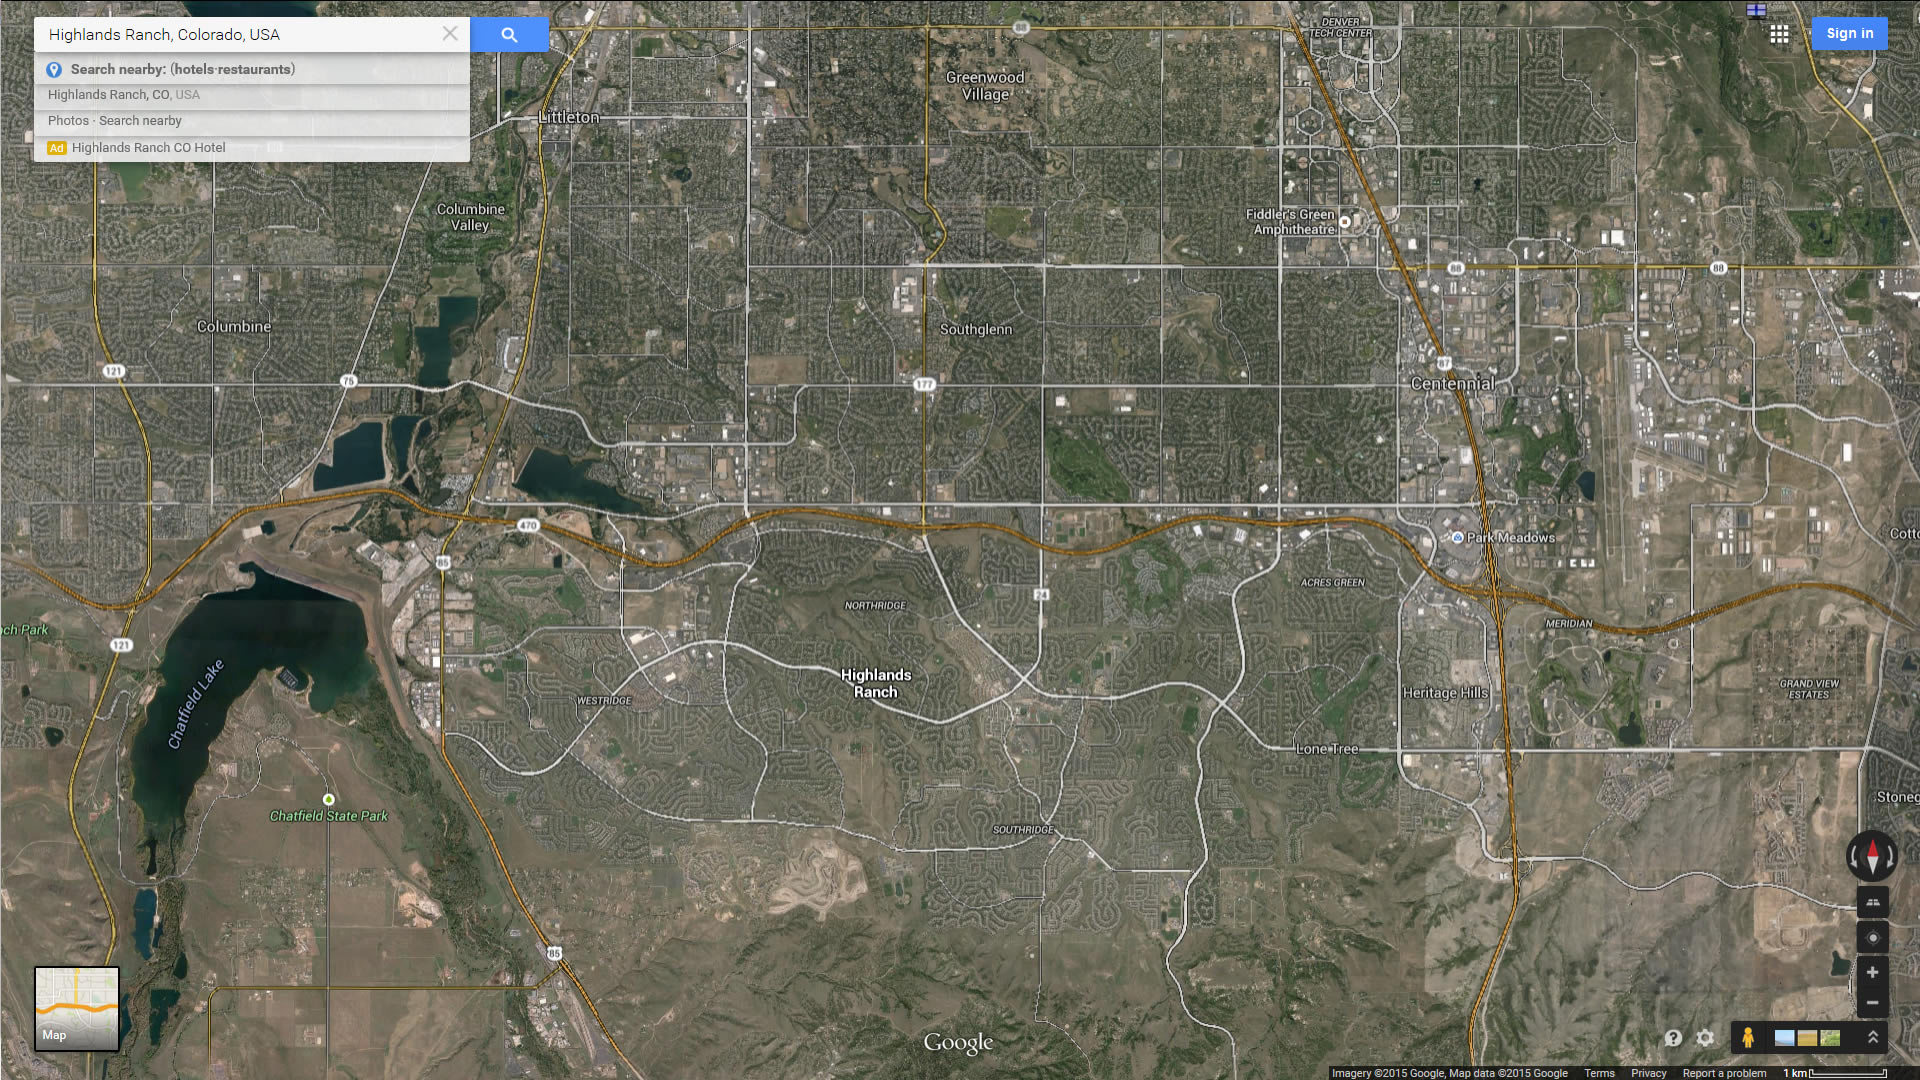 Highlands Ranch Colorado Map Related Highlands Ranch Colorado Maps and Highlands Ranch Colorado  Satellite Images